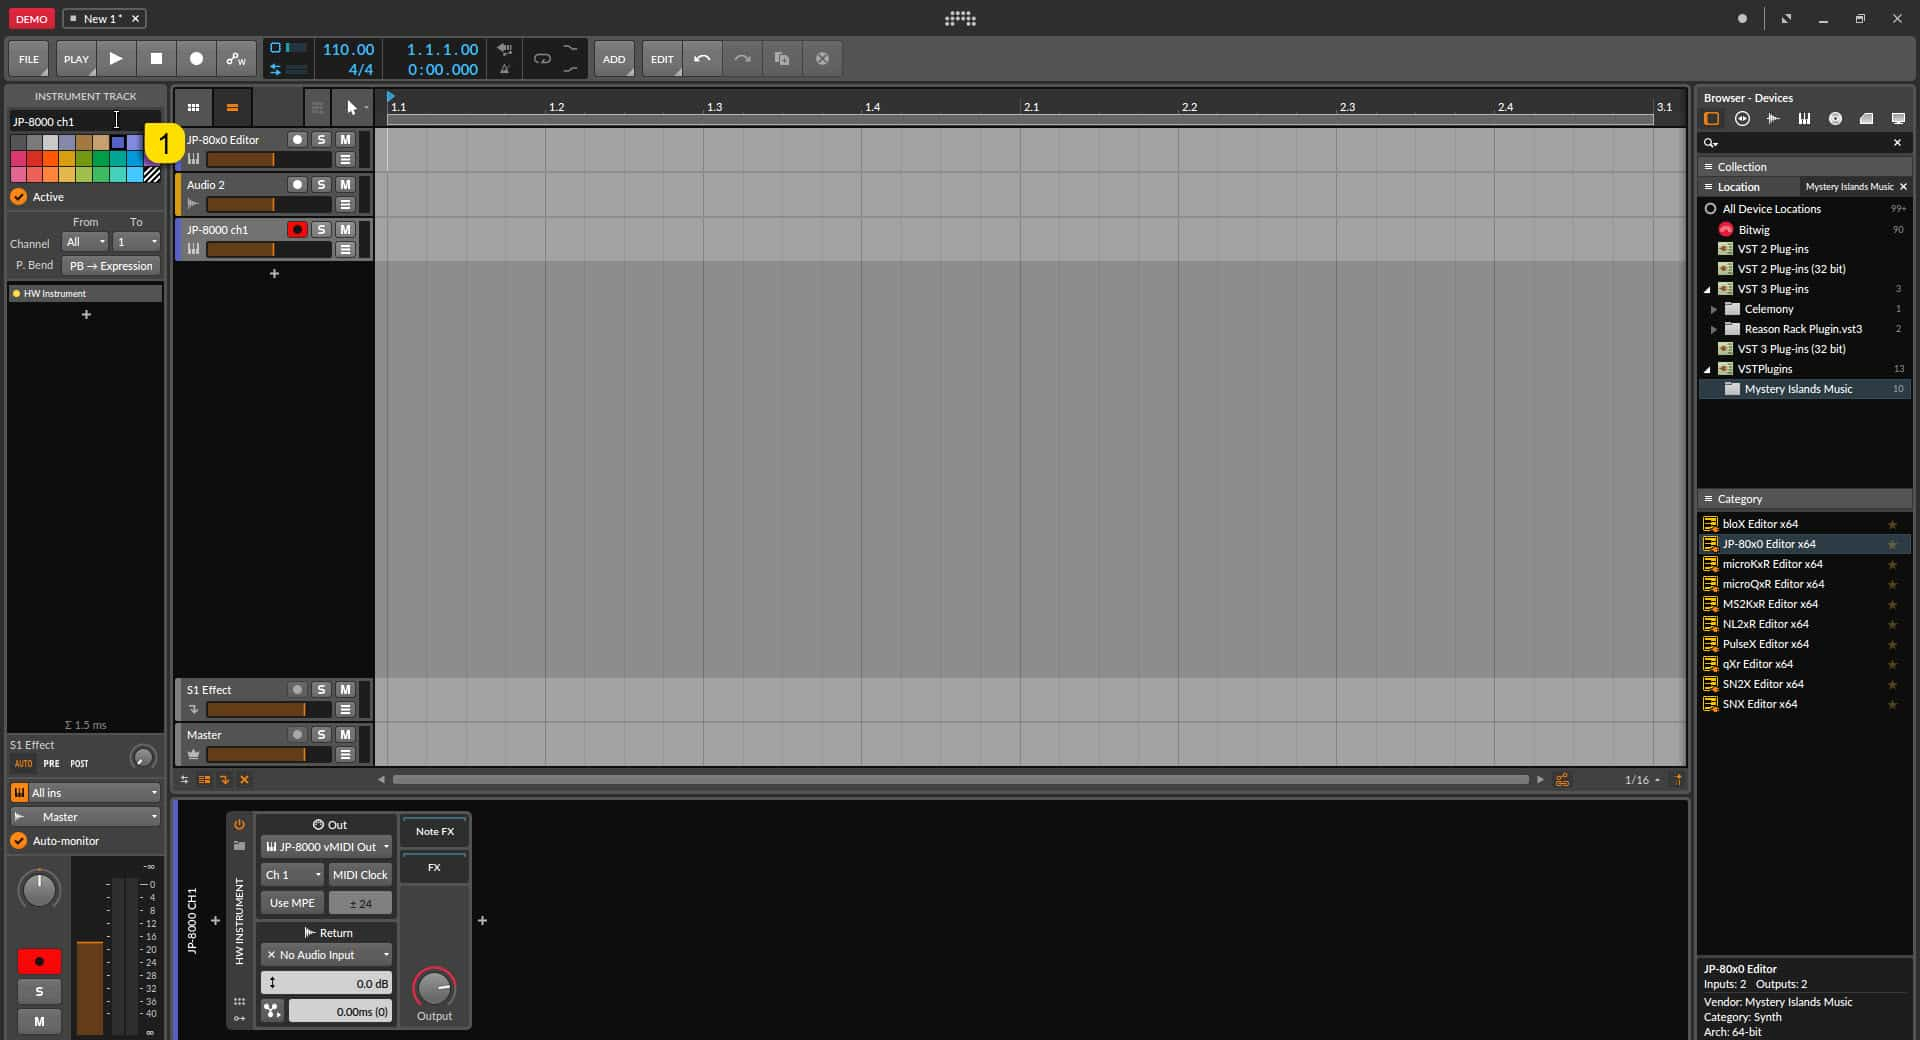 Bitwig Studio Config - Rename and Add Color to your Tracks